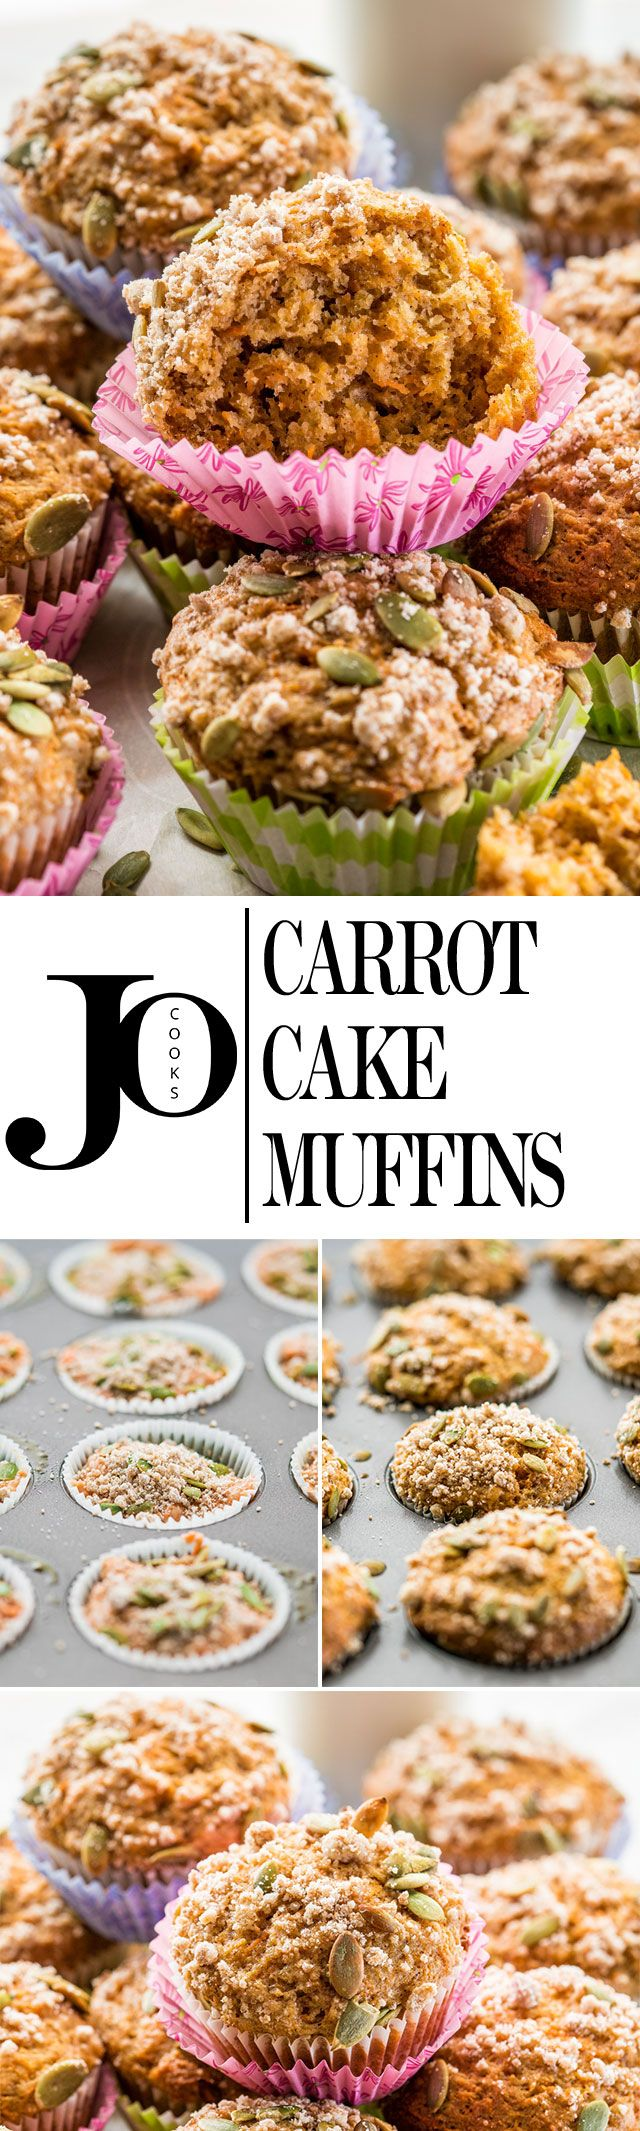 These incredible healthier carrot cake muffins come complete with a delicious streusel topping and pepitas for an extra crunch.